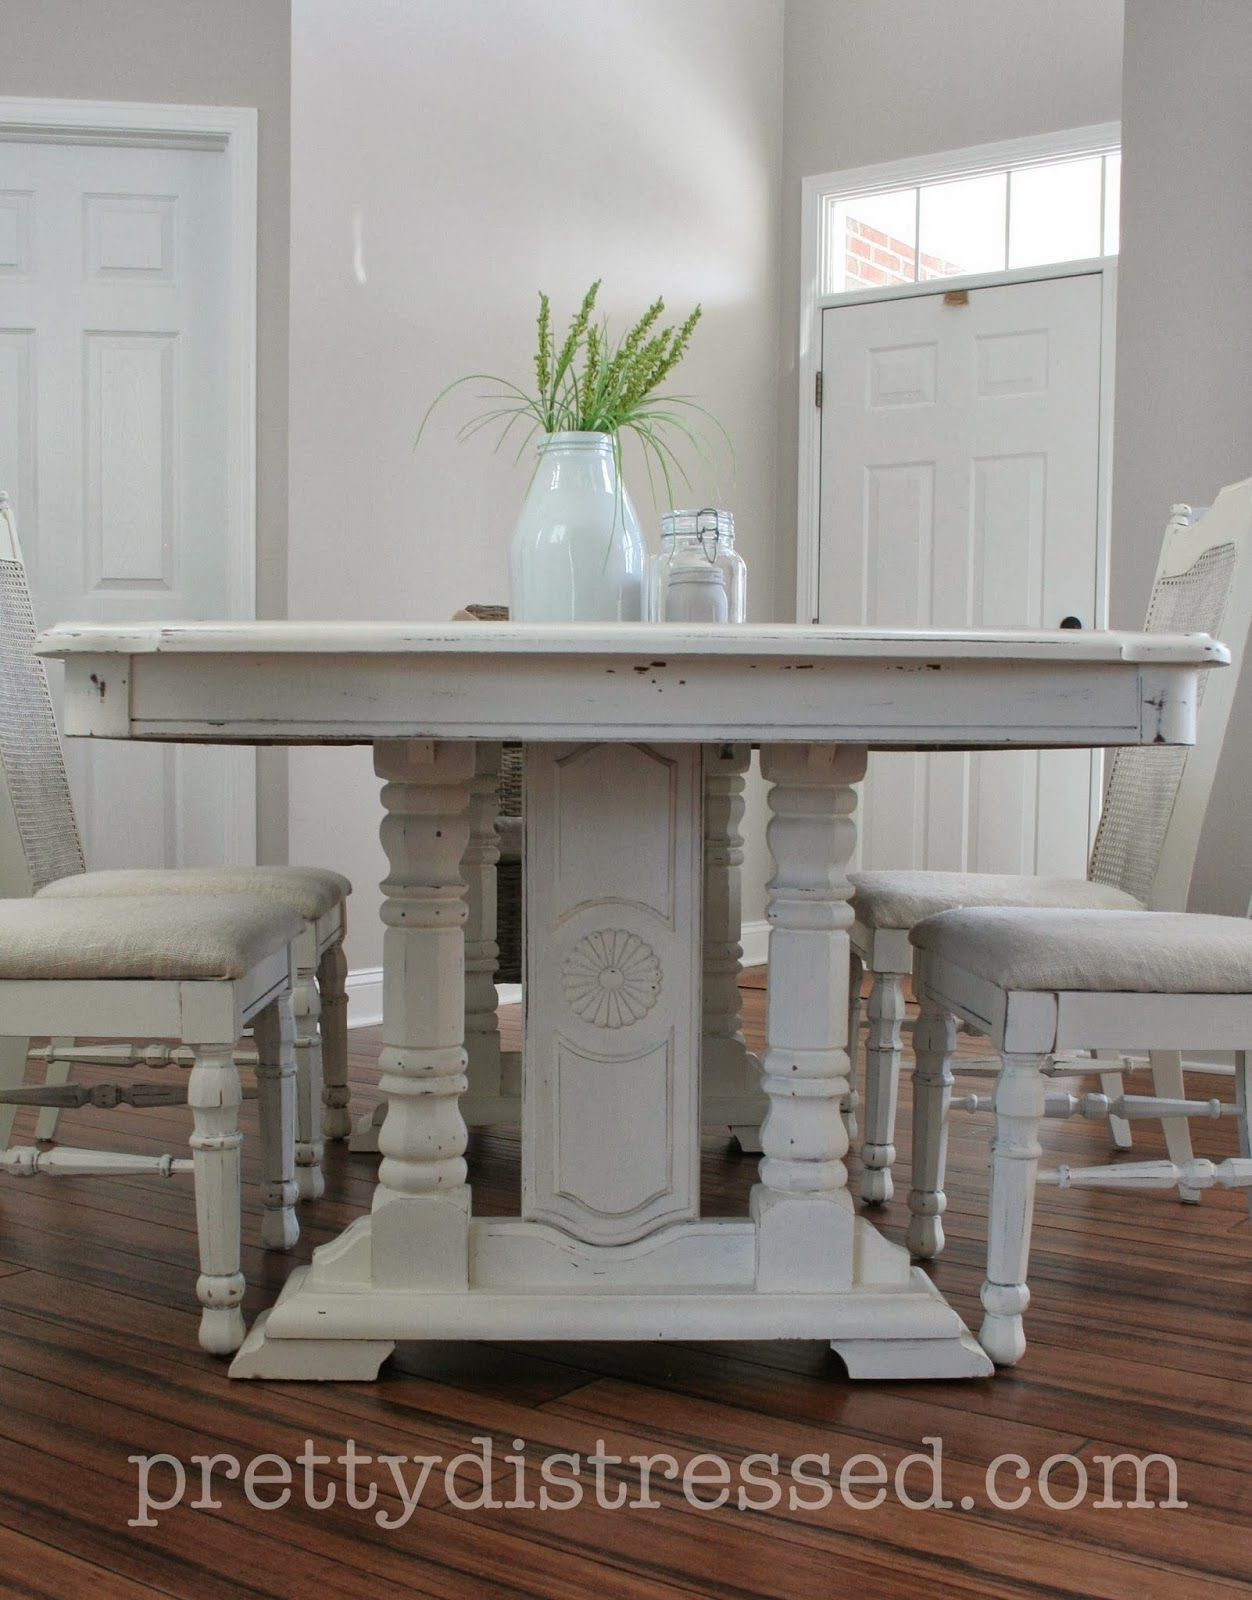 Pretty Distressed Eleanor s Table Before & After